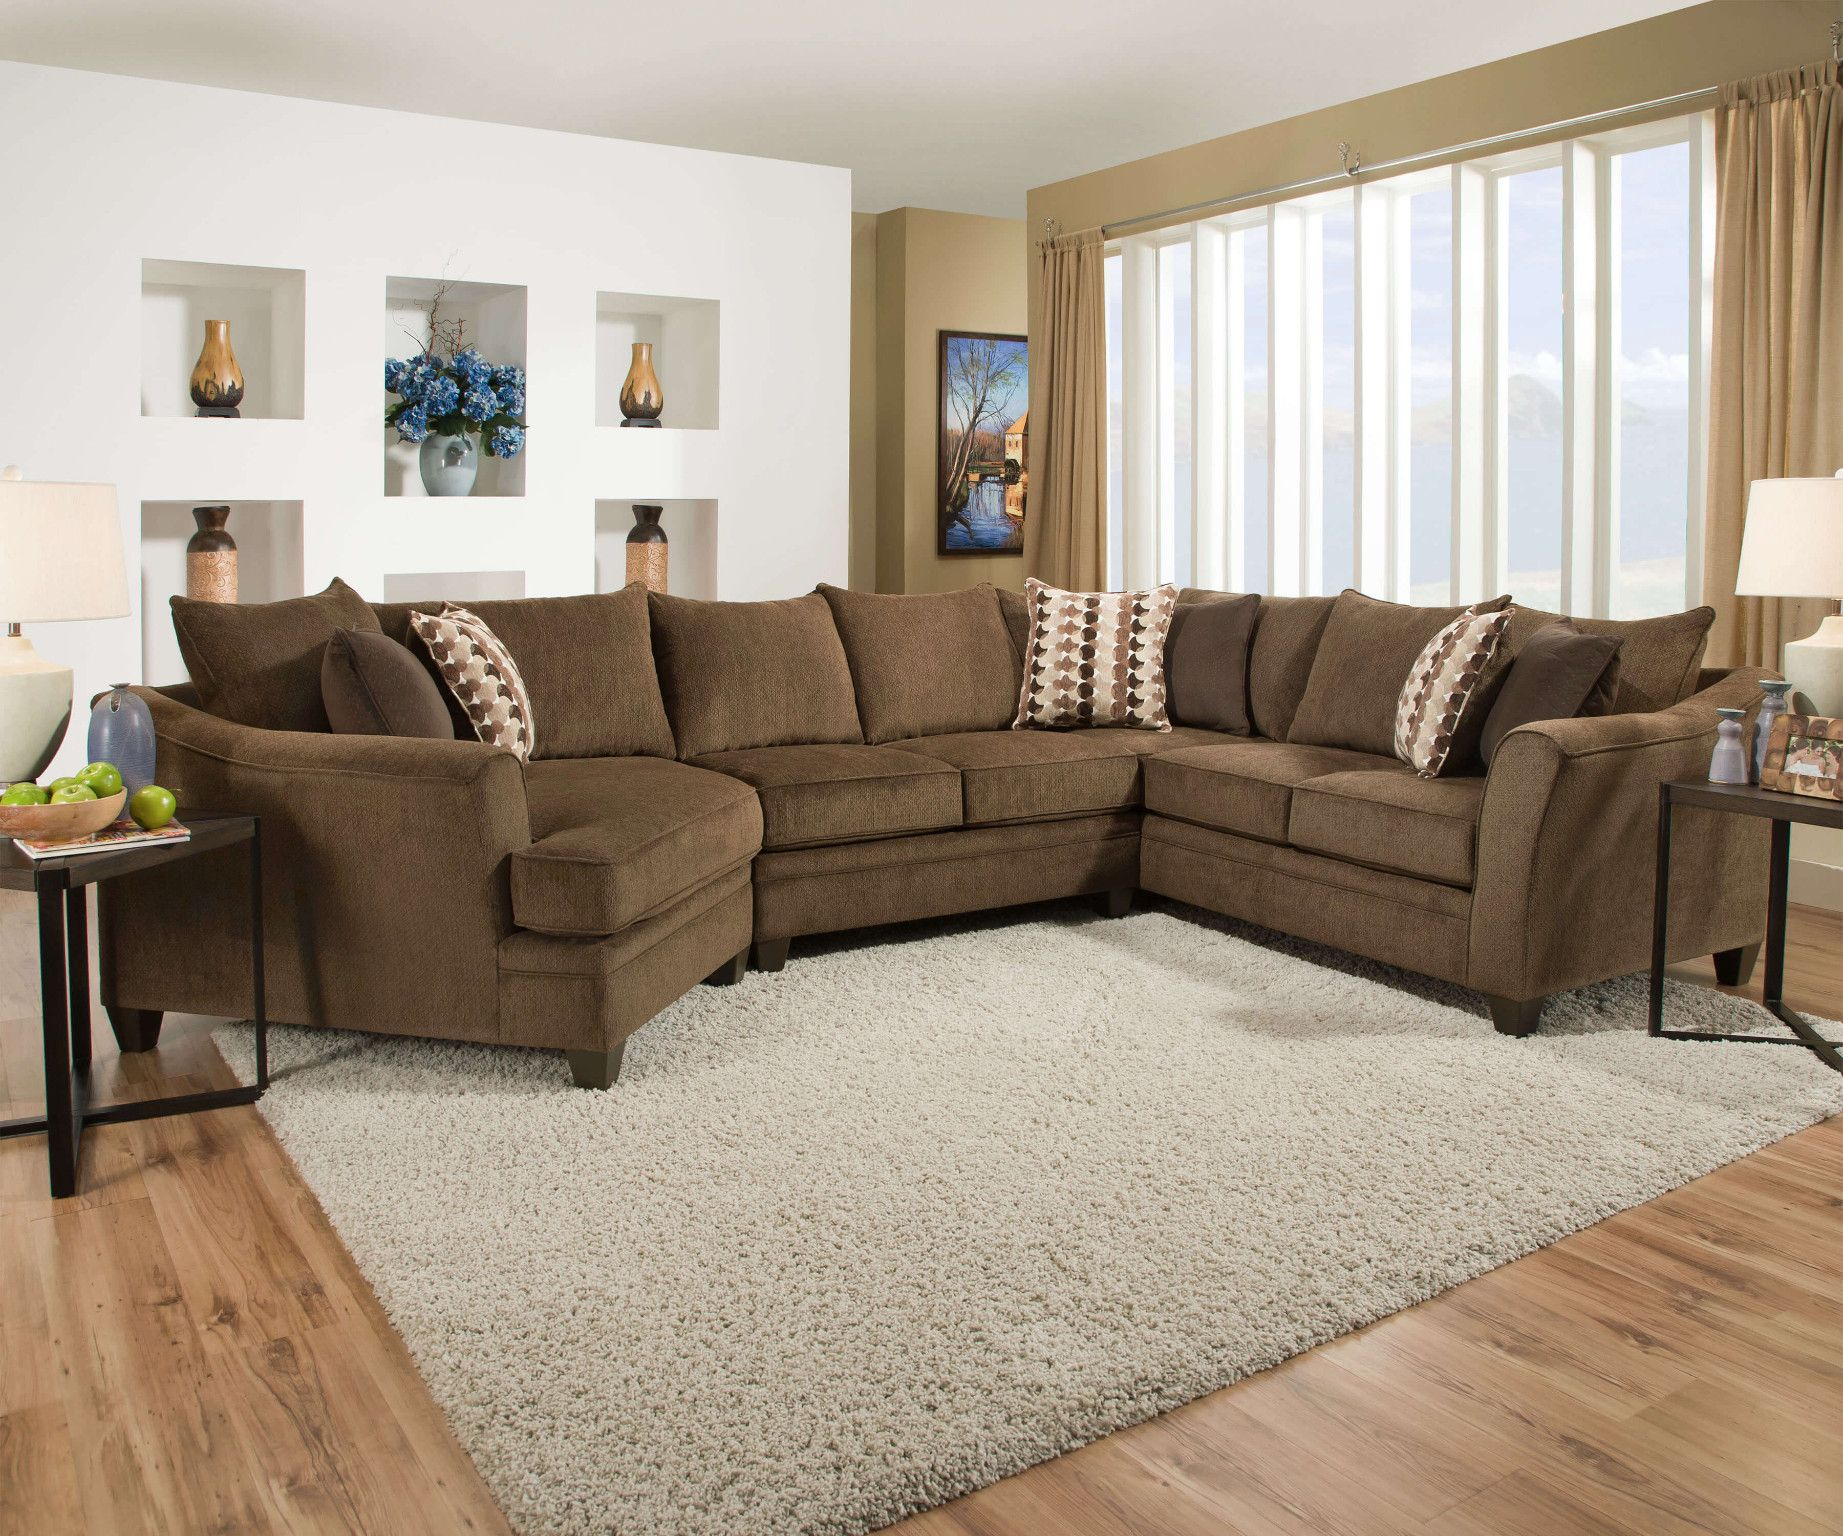 Albany Chestnut 3 Piece Sectional Quality Simmons Upholstery With